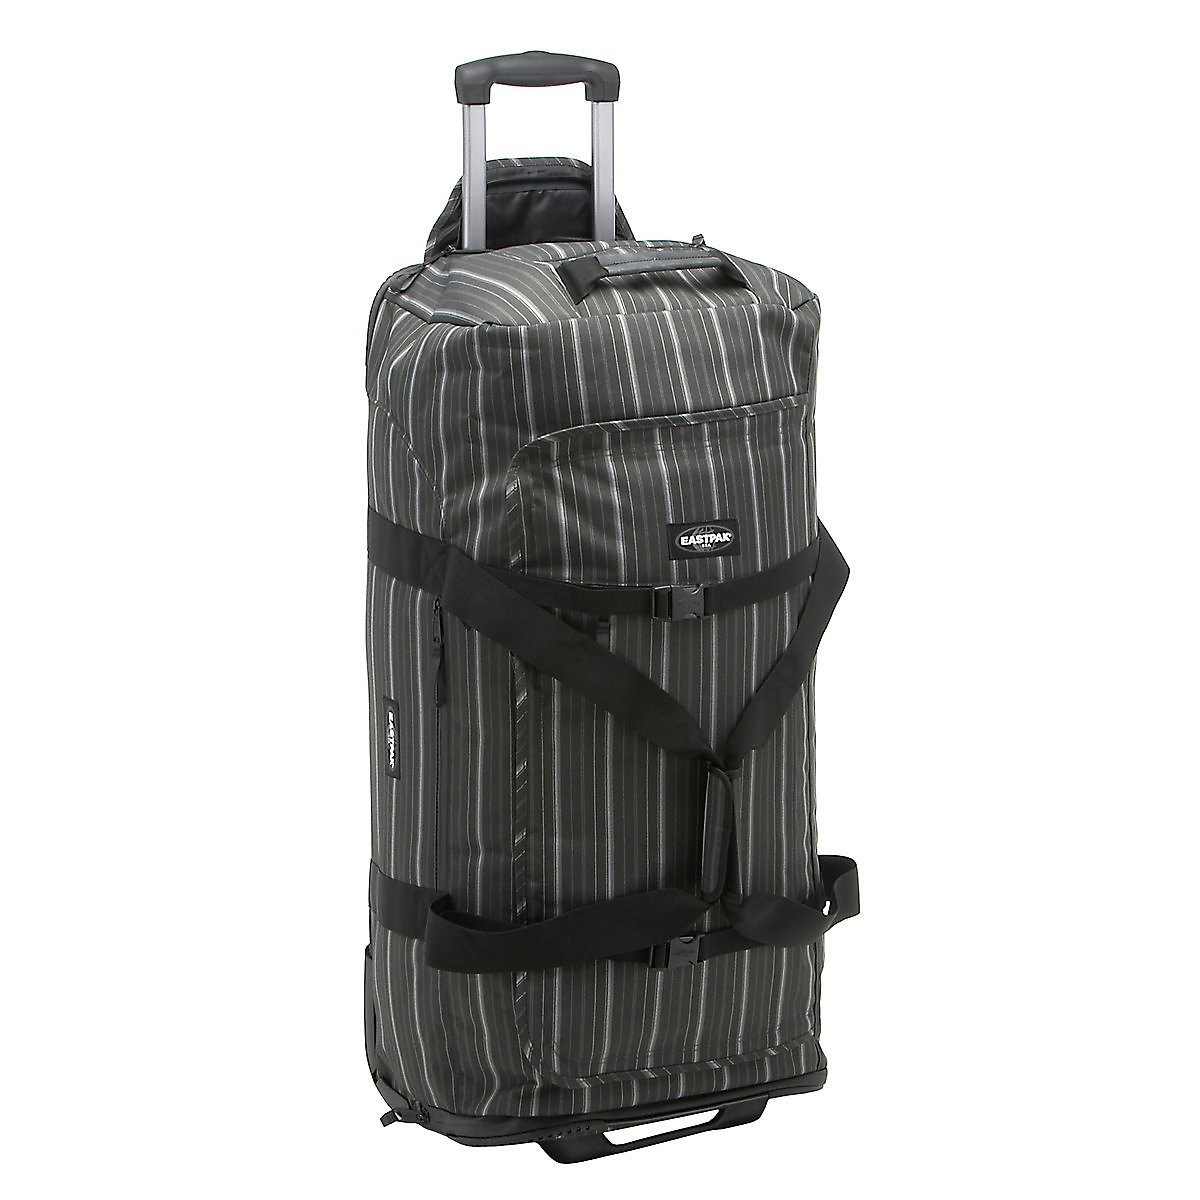 Eastpak Maleta, PRESTON, 81 cm, gris Ash Blend, EK216: Amazon.es: Equipaje